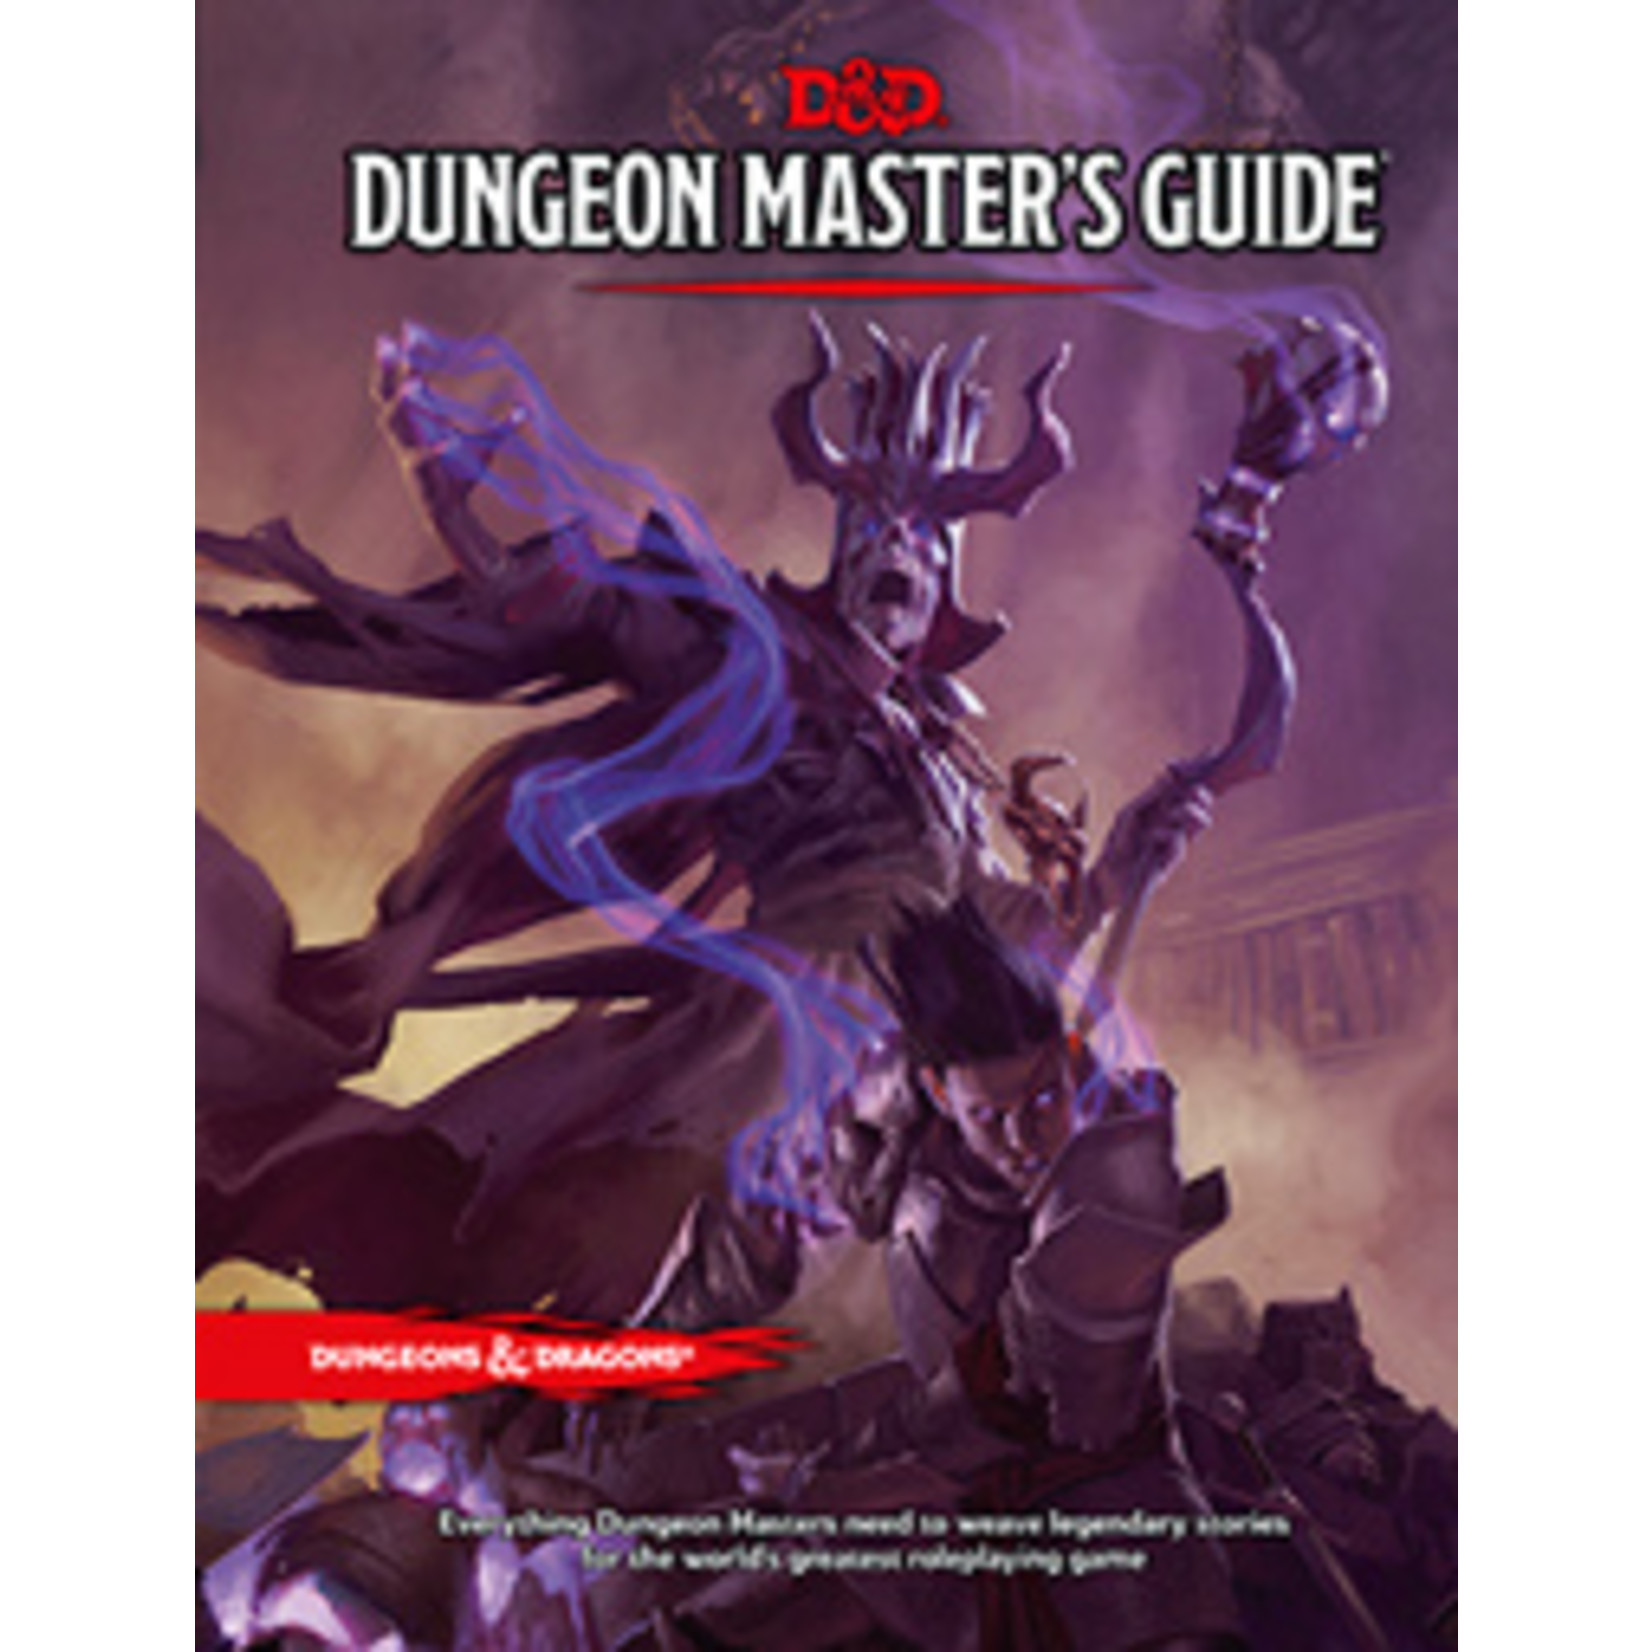 Dungeons and Dragons RPG: Dungeons Master's Guide